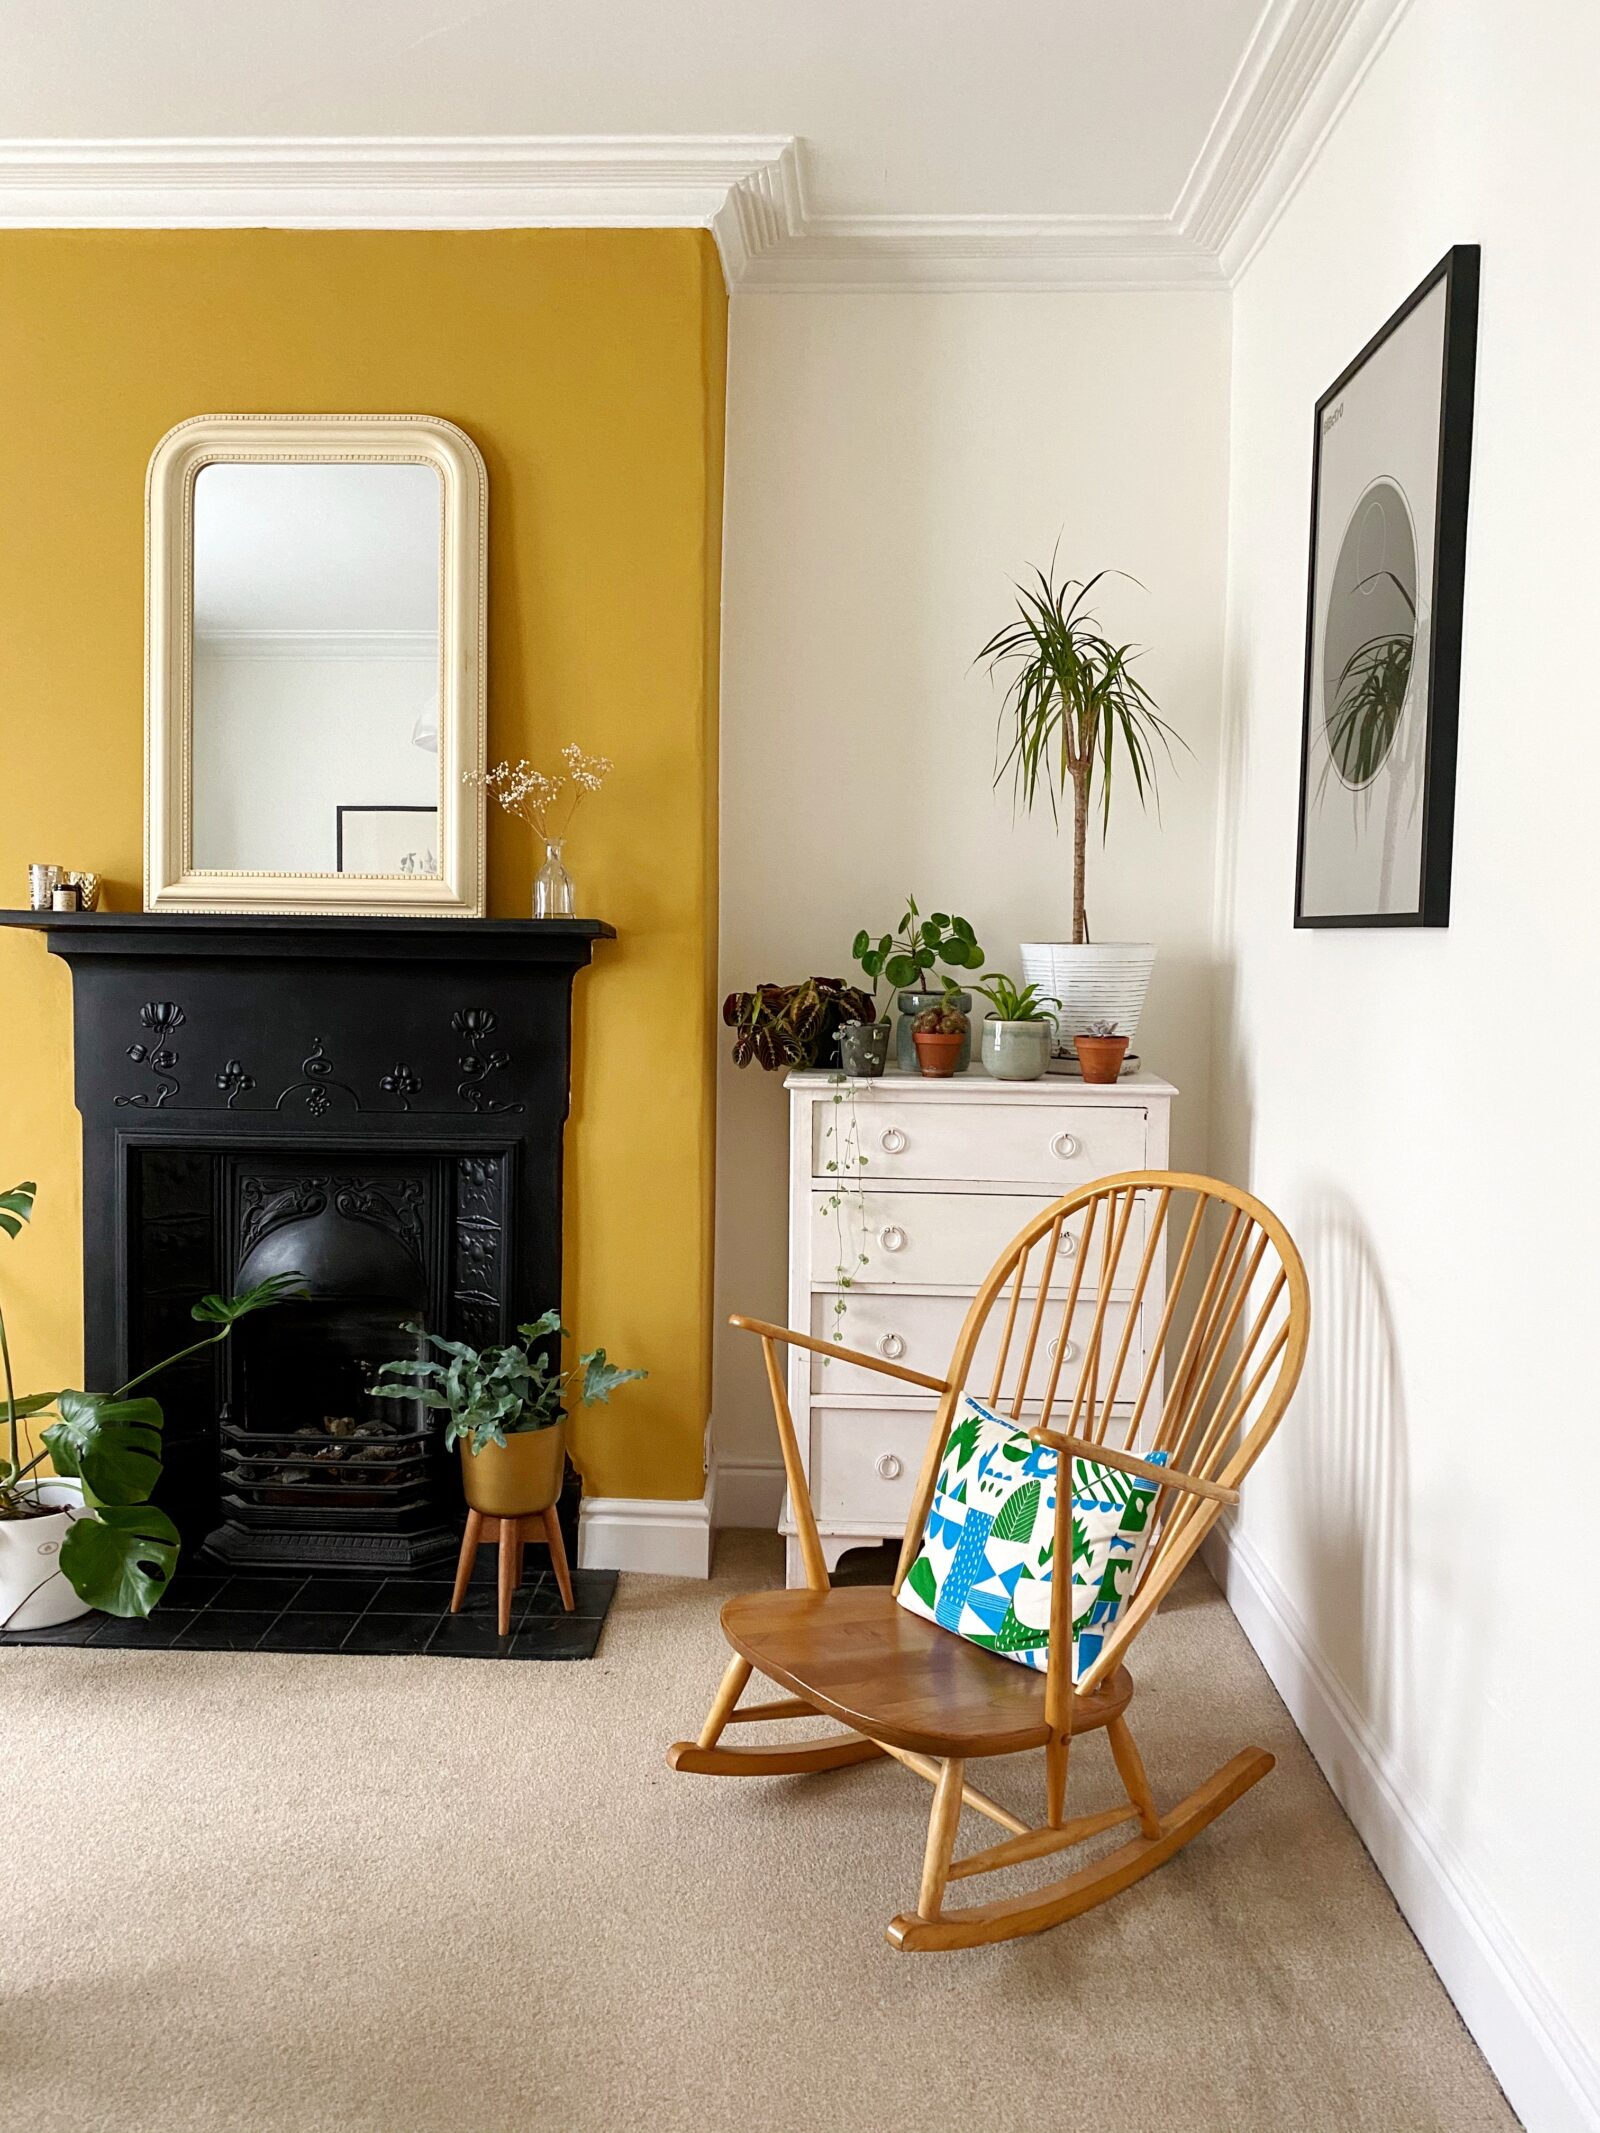 Mustard living Room with rocking chair.